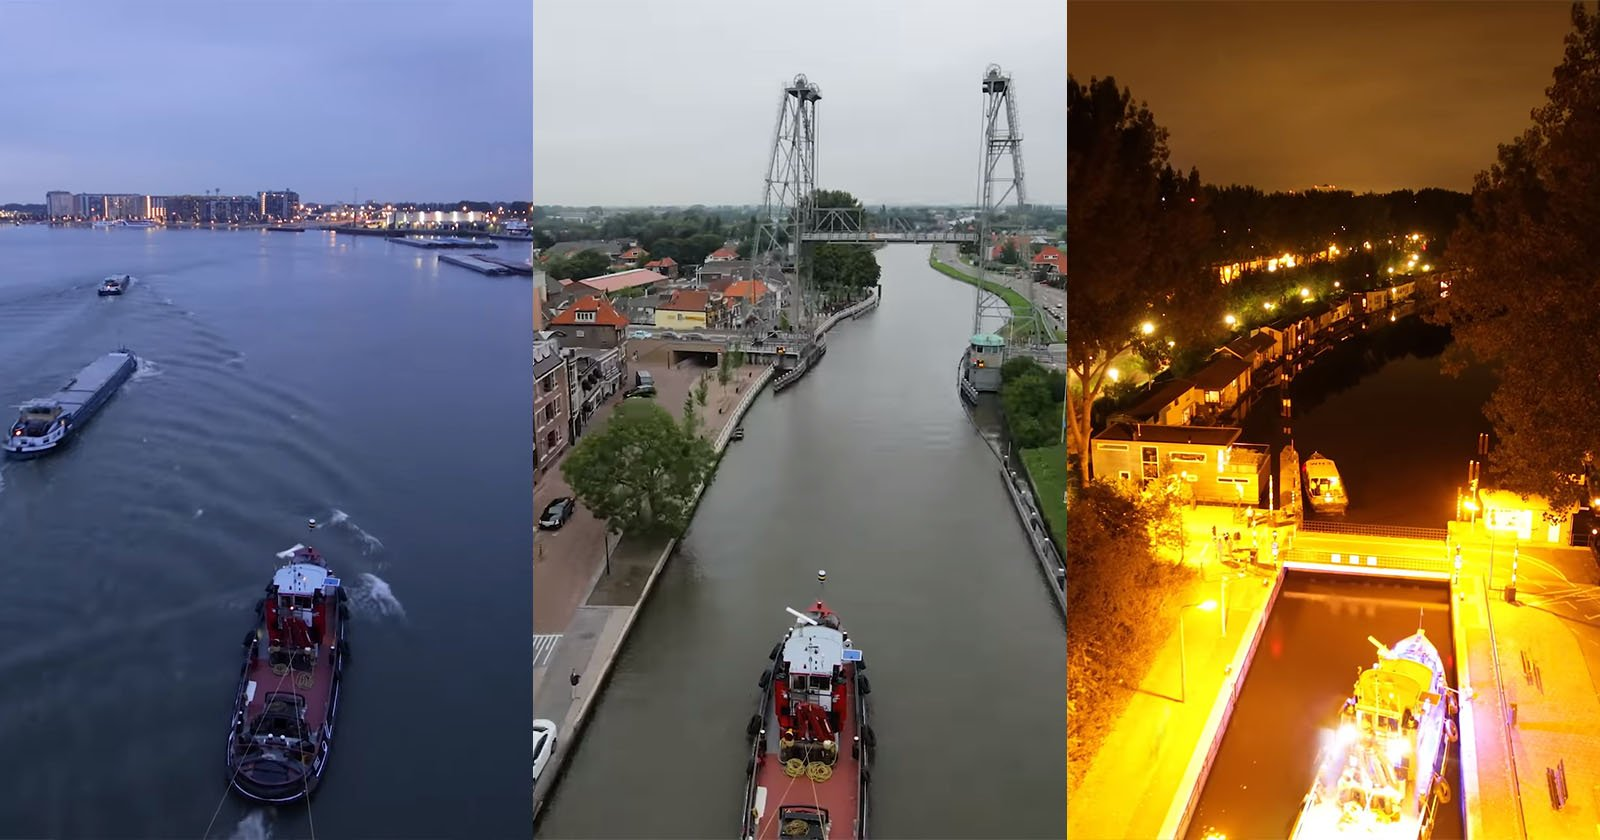 Aerial Boat Timelapse Offers Beautiful Tour of Dutch Waterways